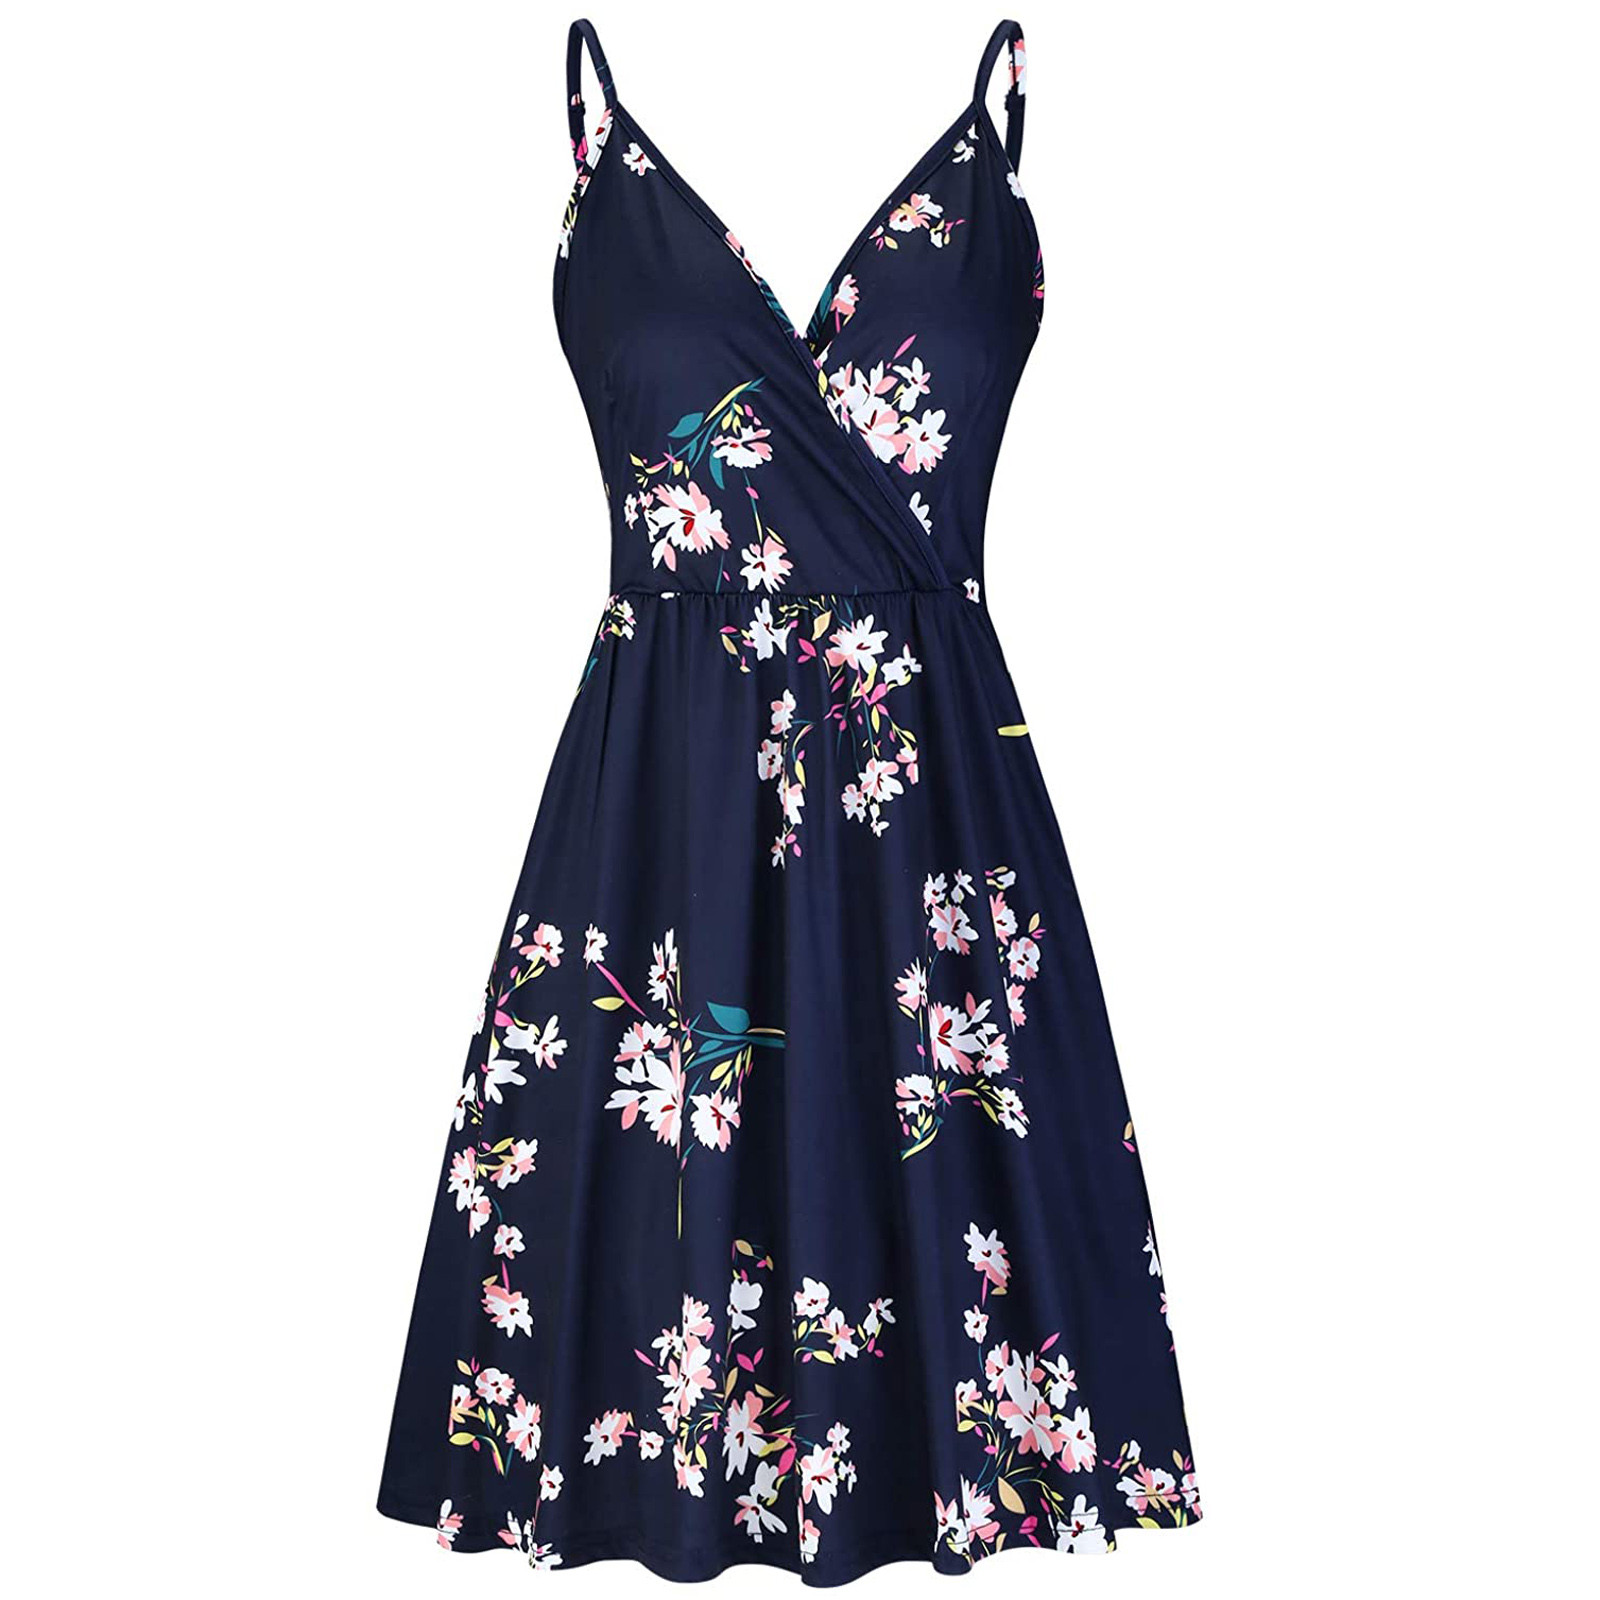 Women's V Neck Floral Spaghetti Strap Summer Casual Swing Dress with Pocket 1